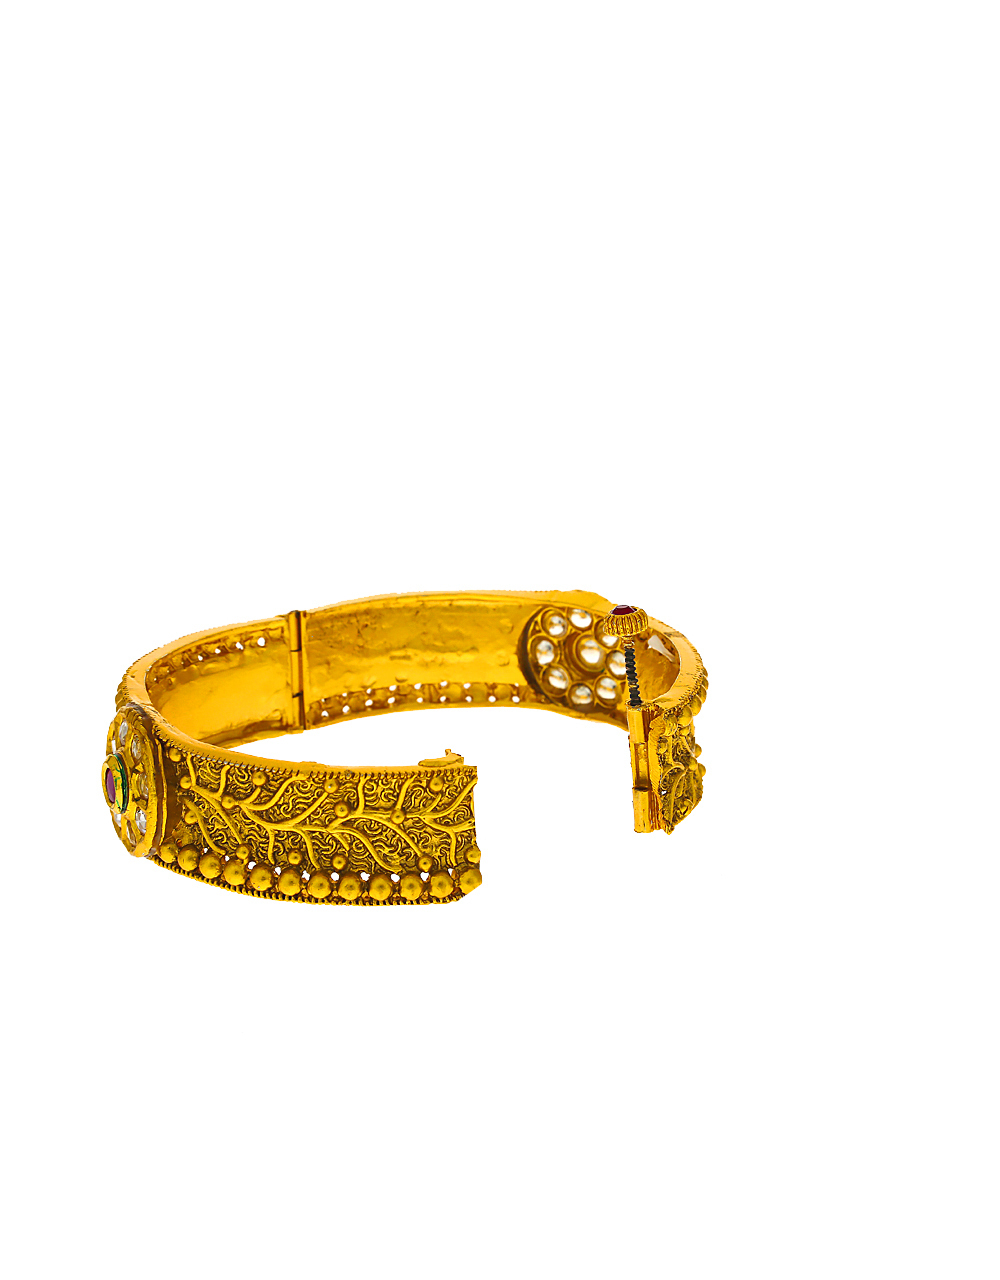 Floral designer studded with pink stone in centre of design bangles for women